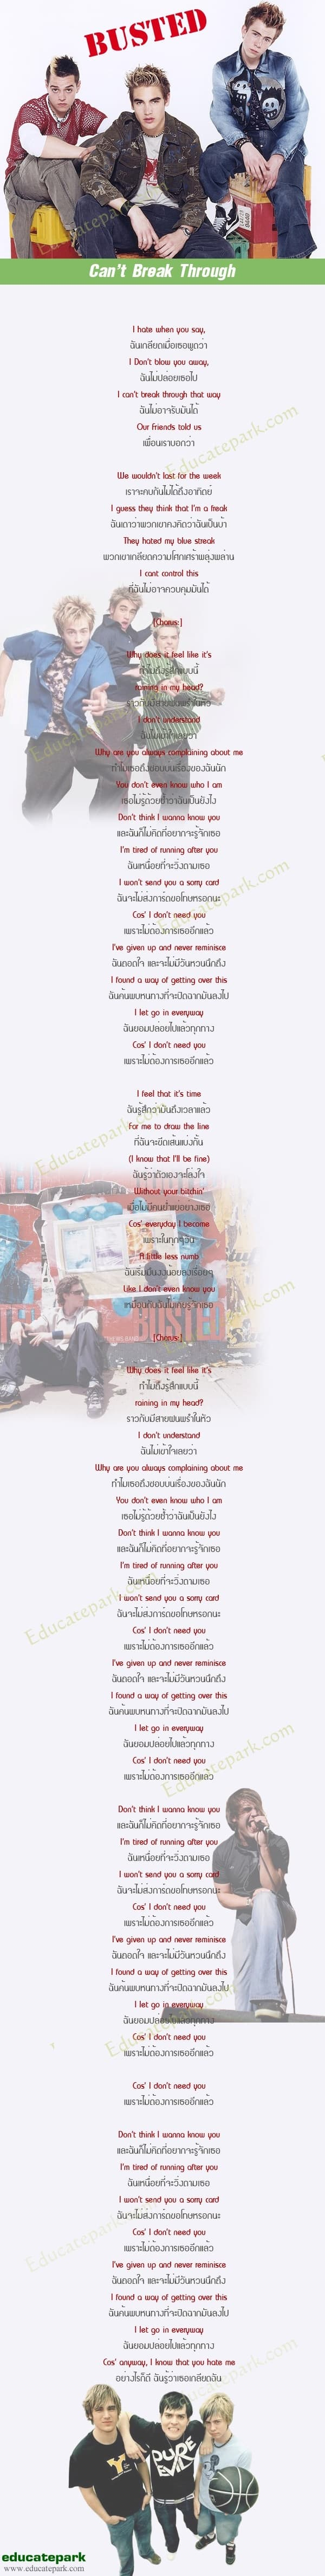 แปลเพลง Can't break through - busted